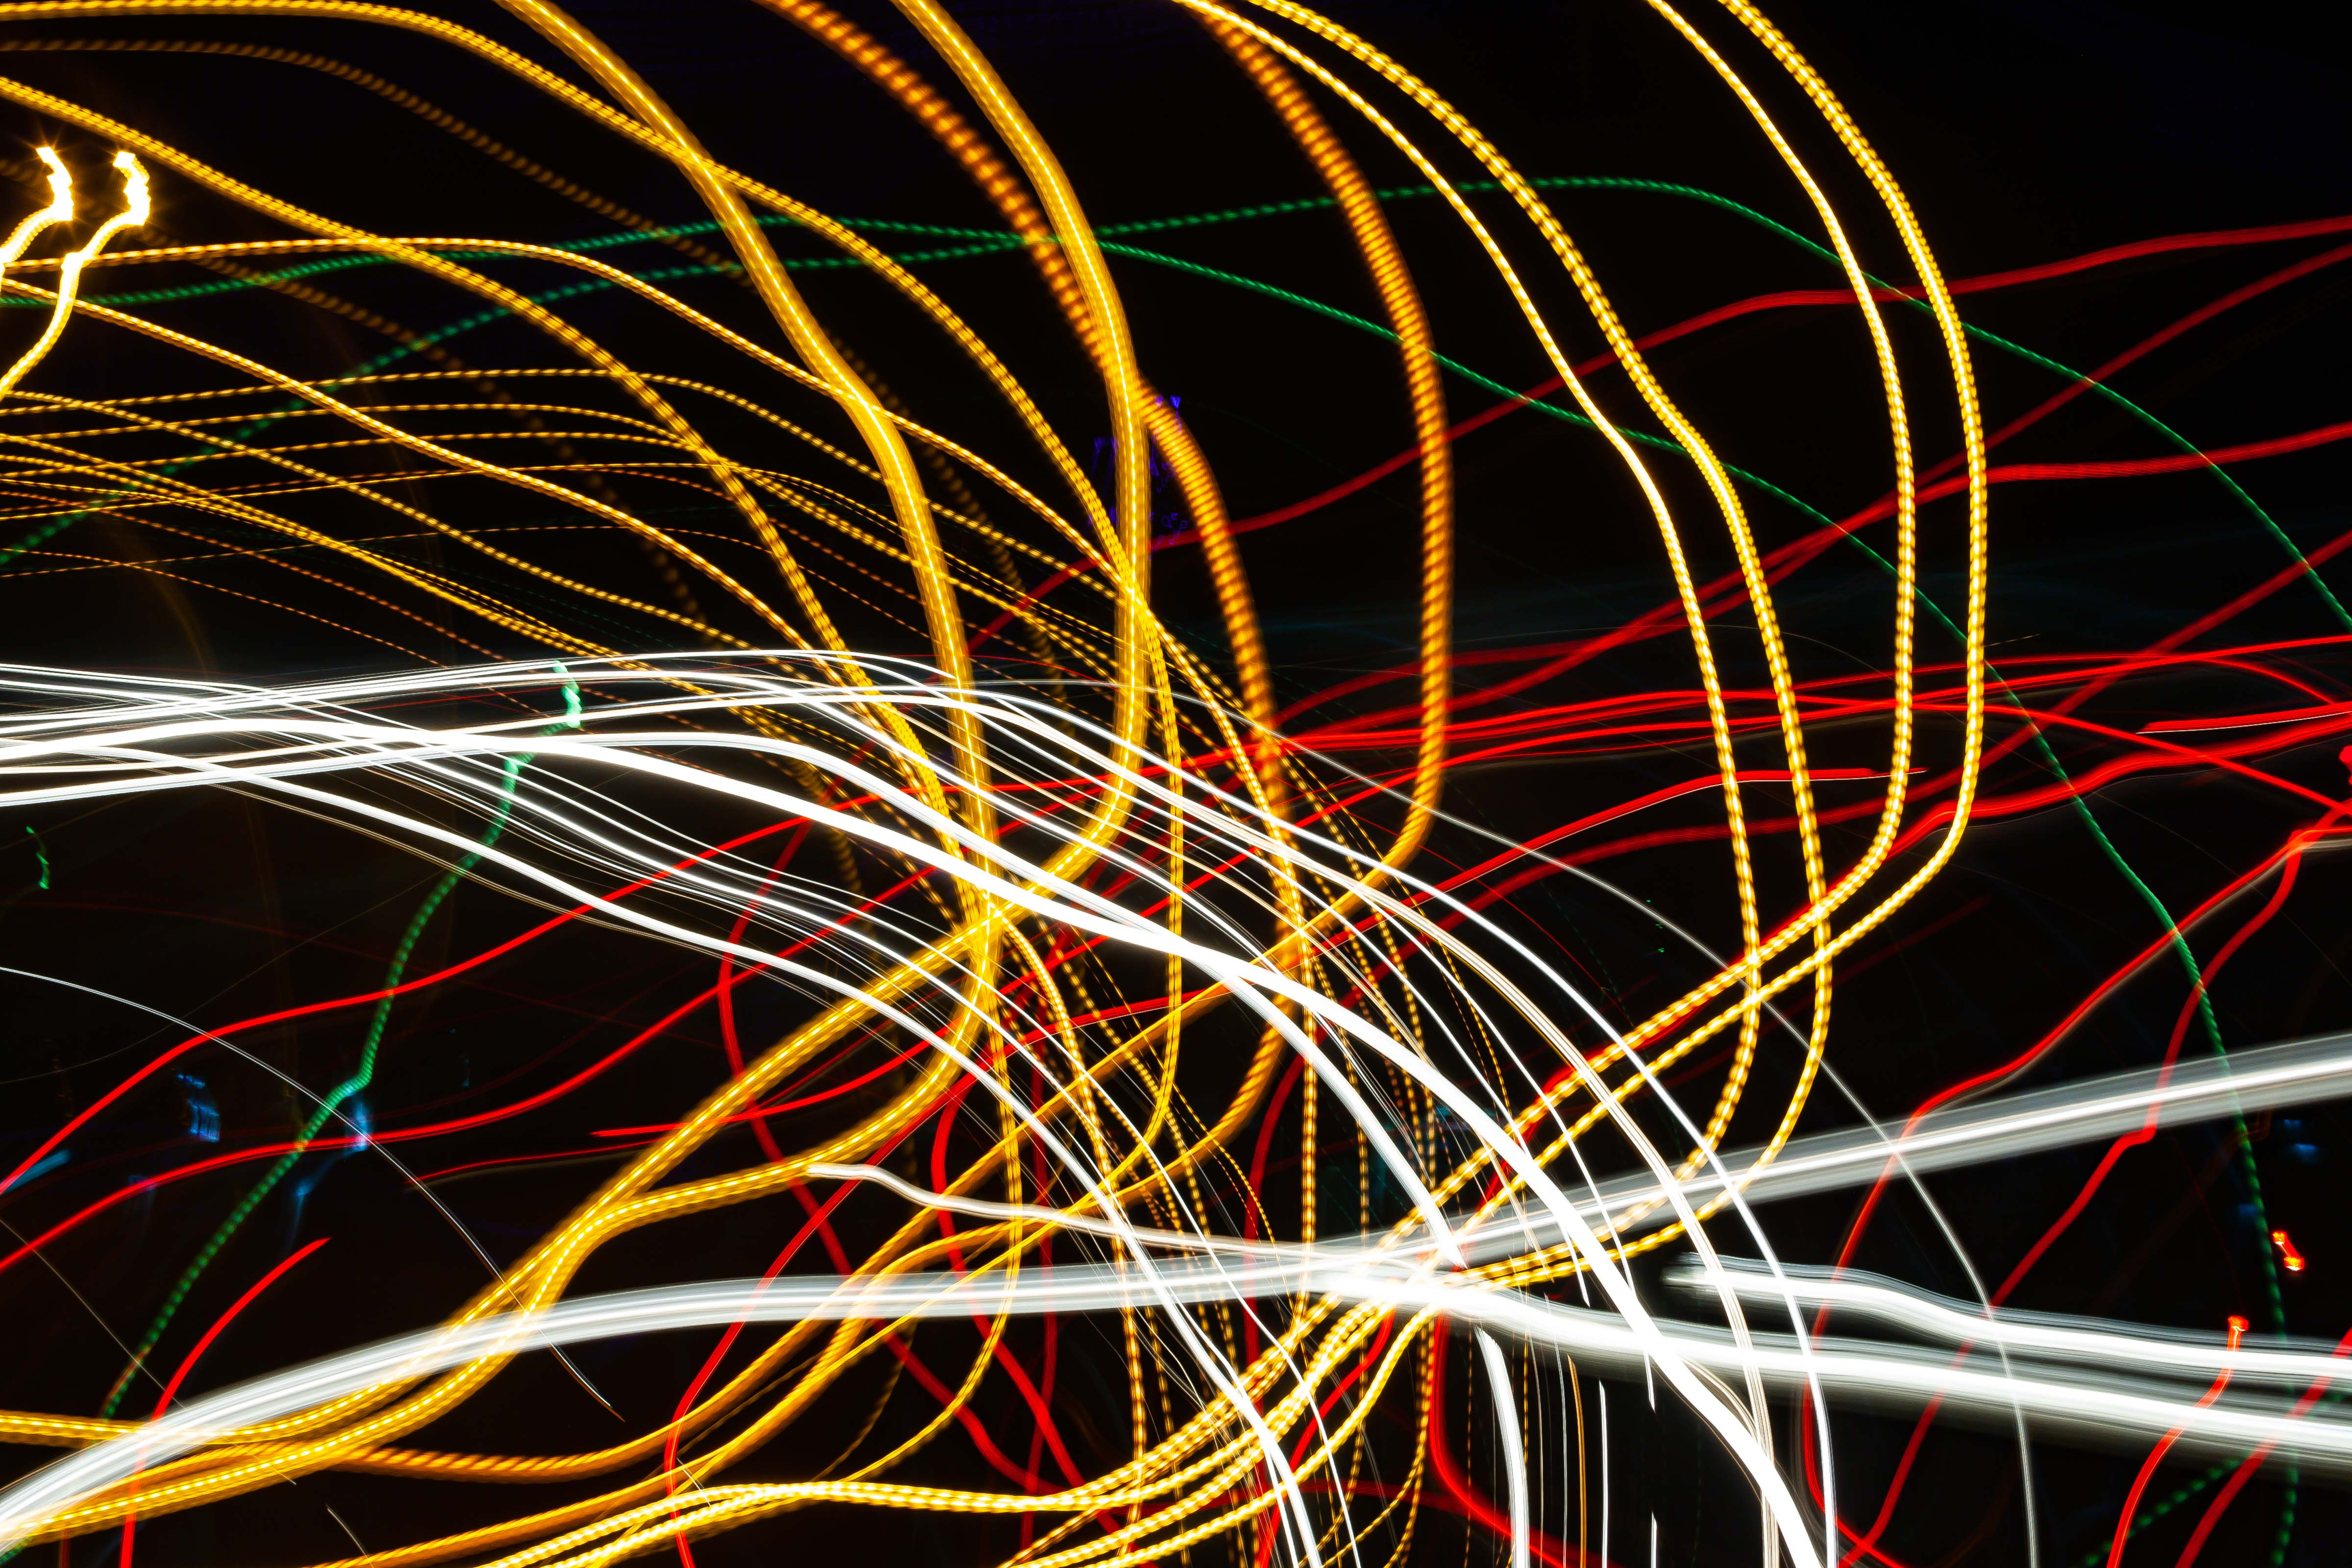 Vietnam, Tuyen Quang Prov, Light Painting, 2008, IMG 8760